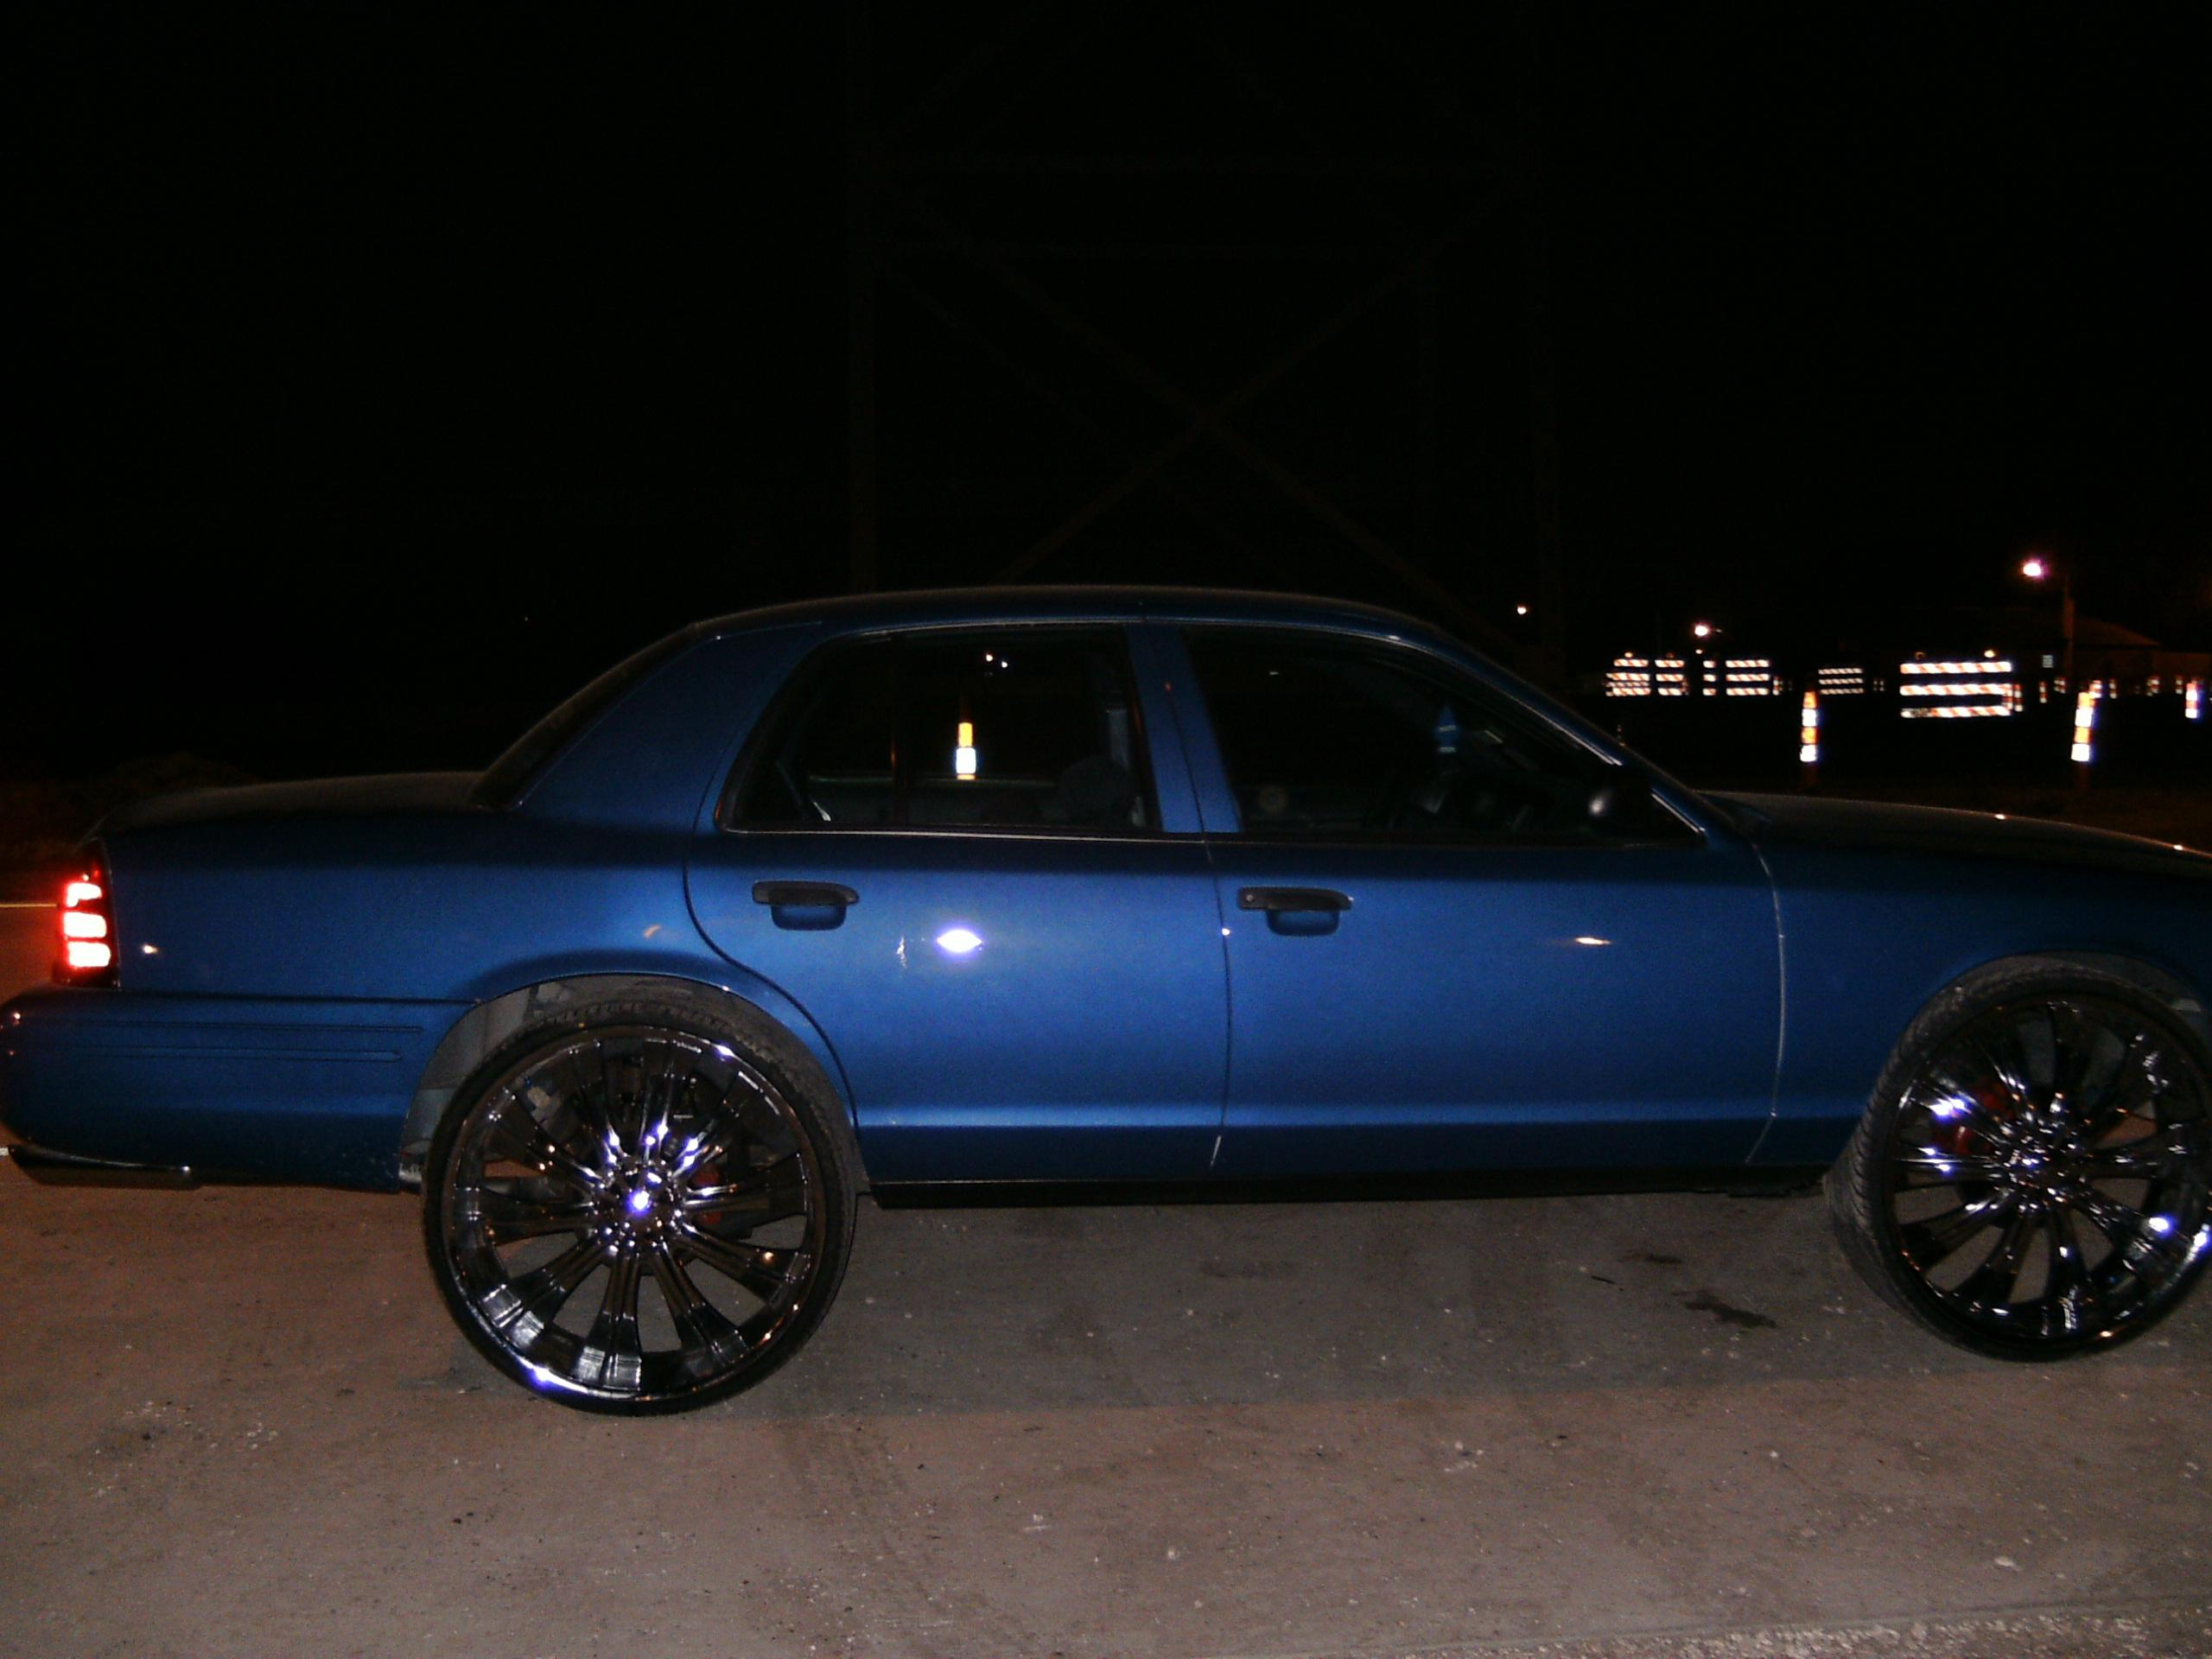 BOSS504's 2003 Ford Crown Victoria